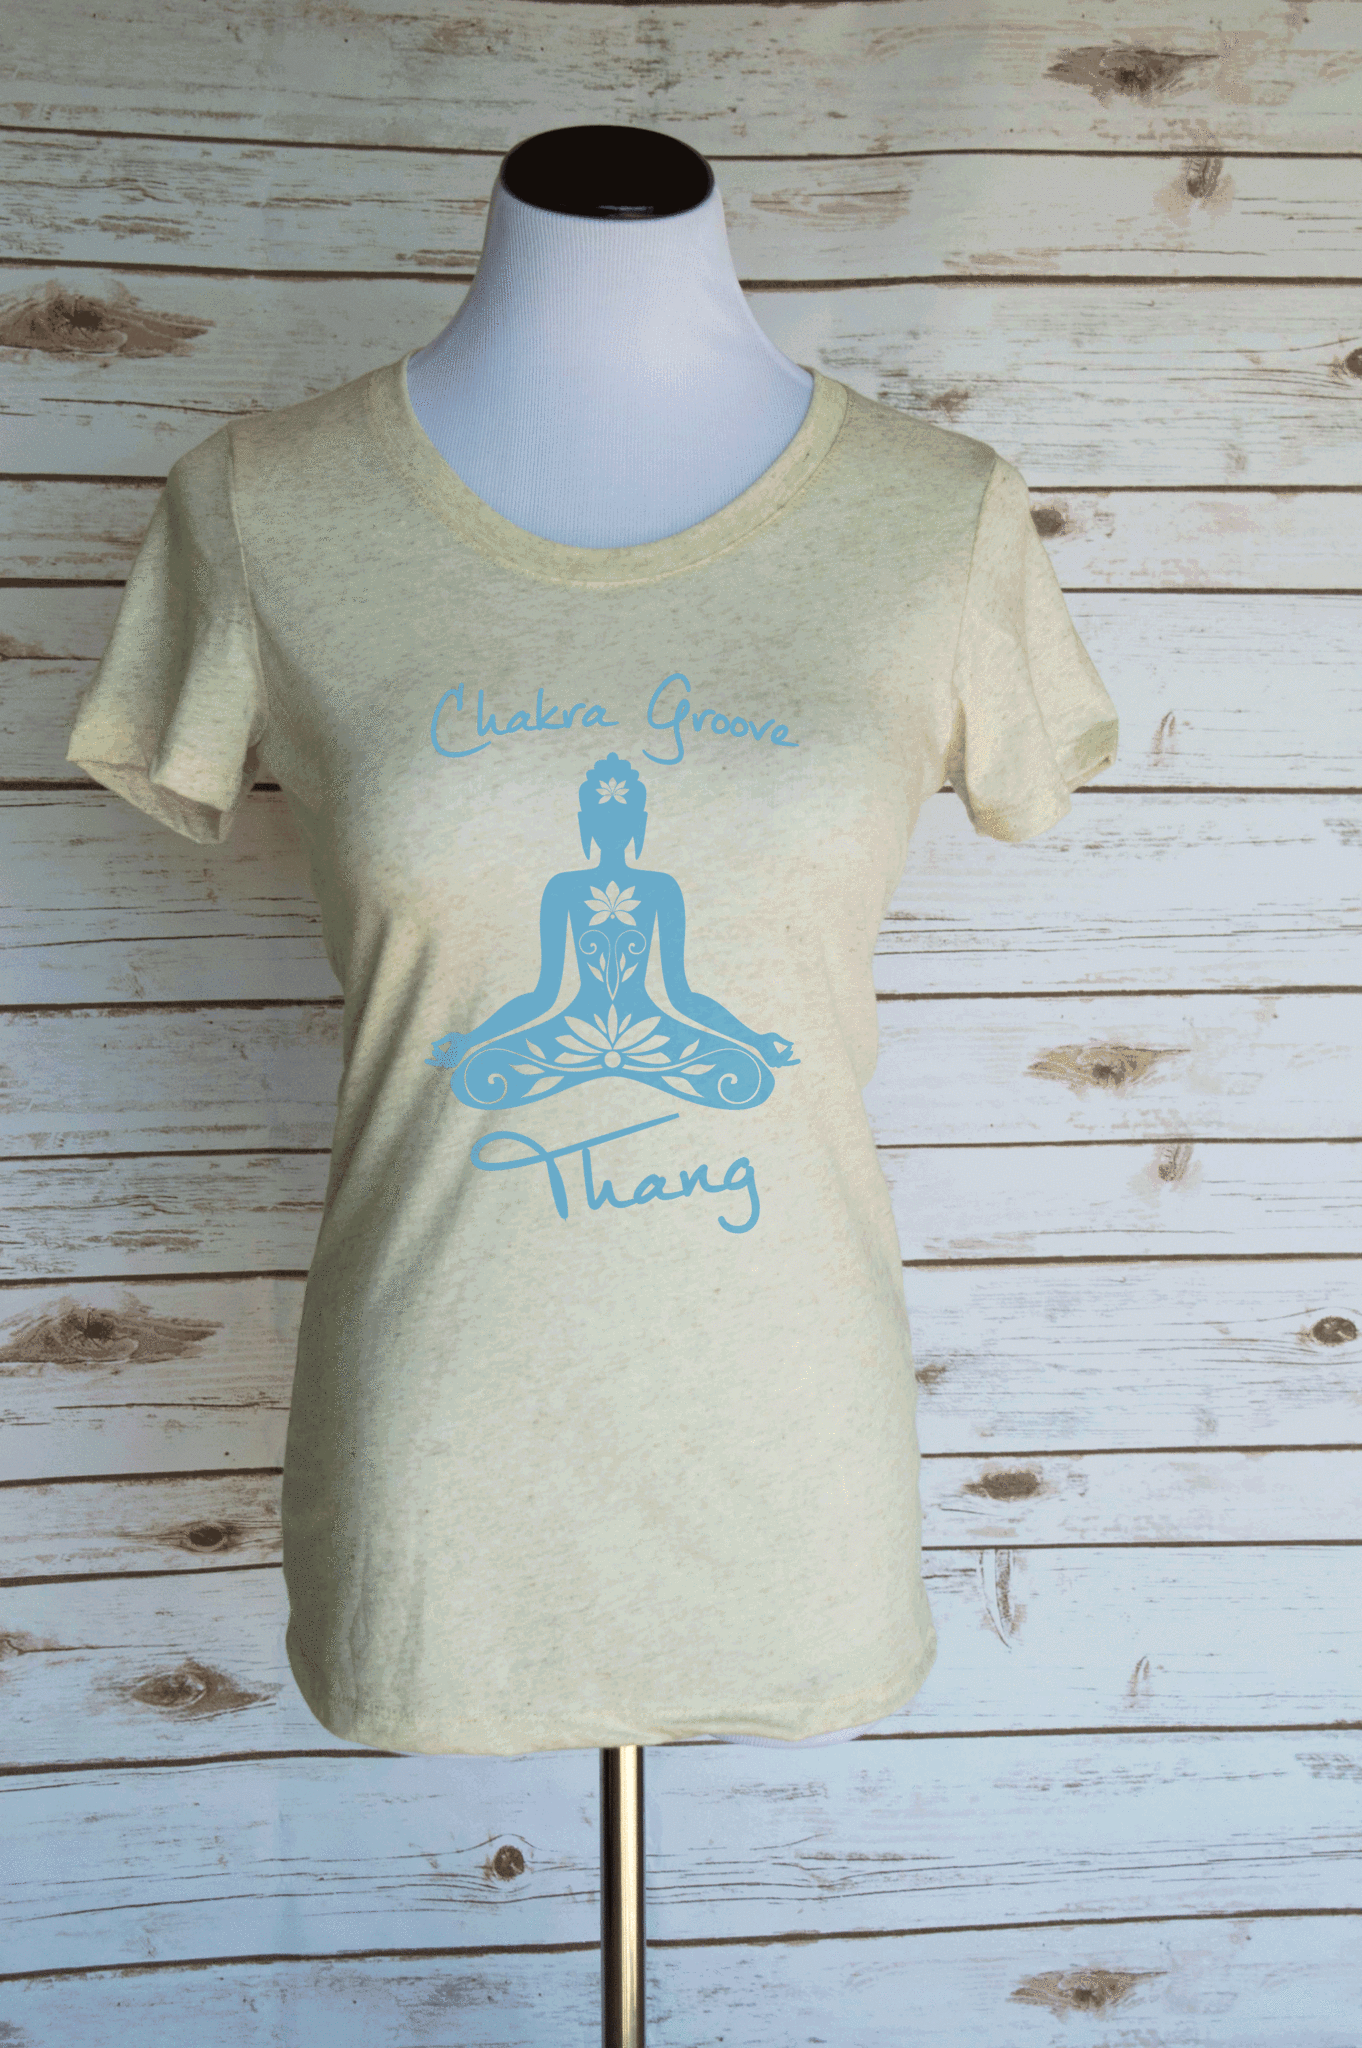 Chakra Groove Thang Casual Graphic T-Shirt. Funny Yoga Quote. Scoop Neck Triblend Tee.